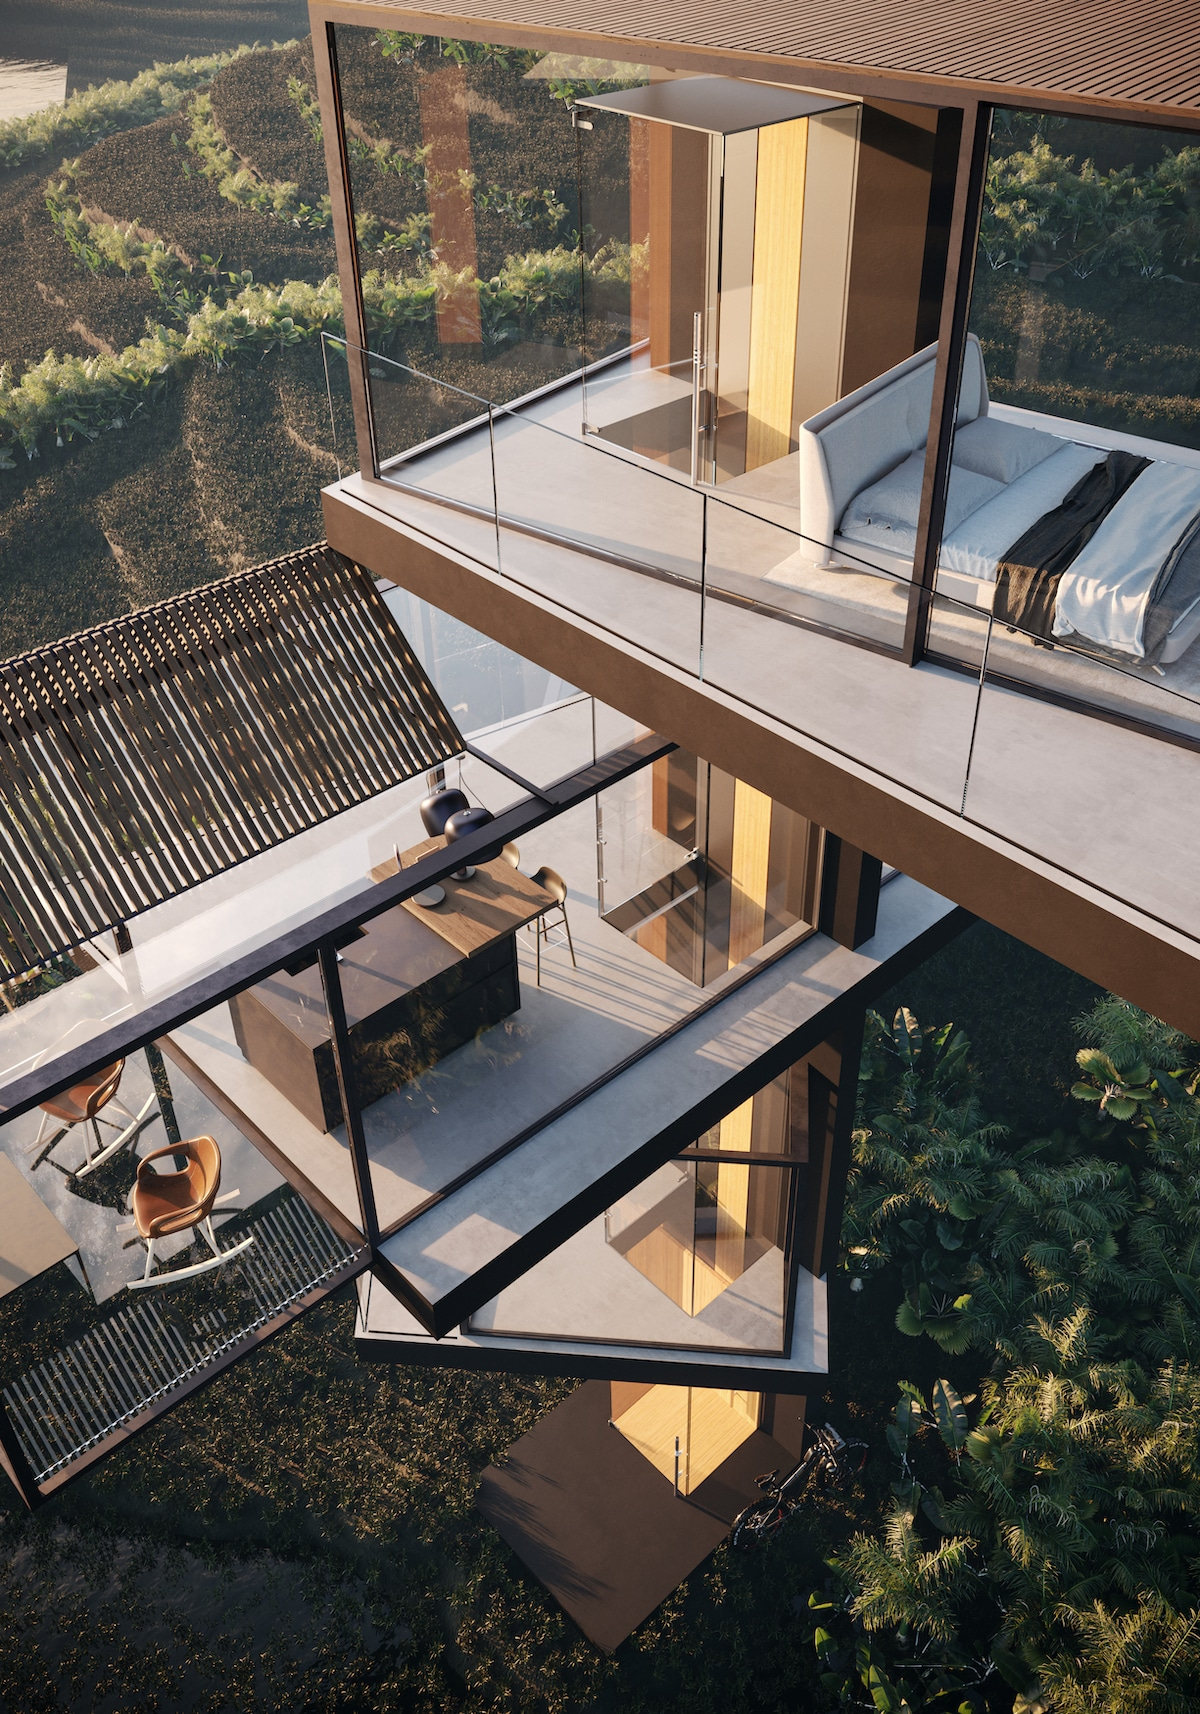 Exterior View of Adriano Design's House on the Rice Paddy